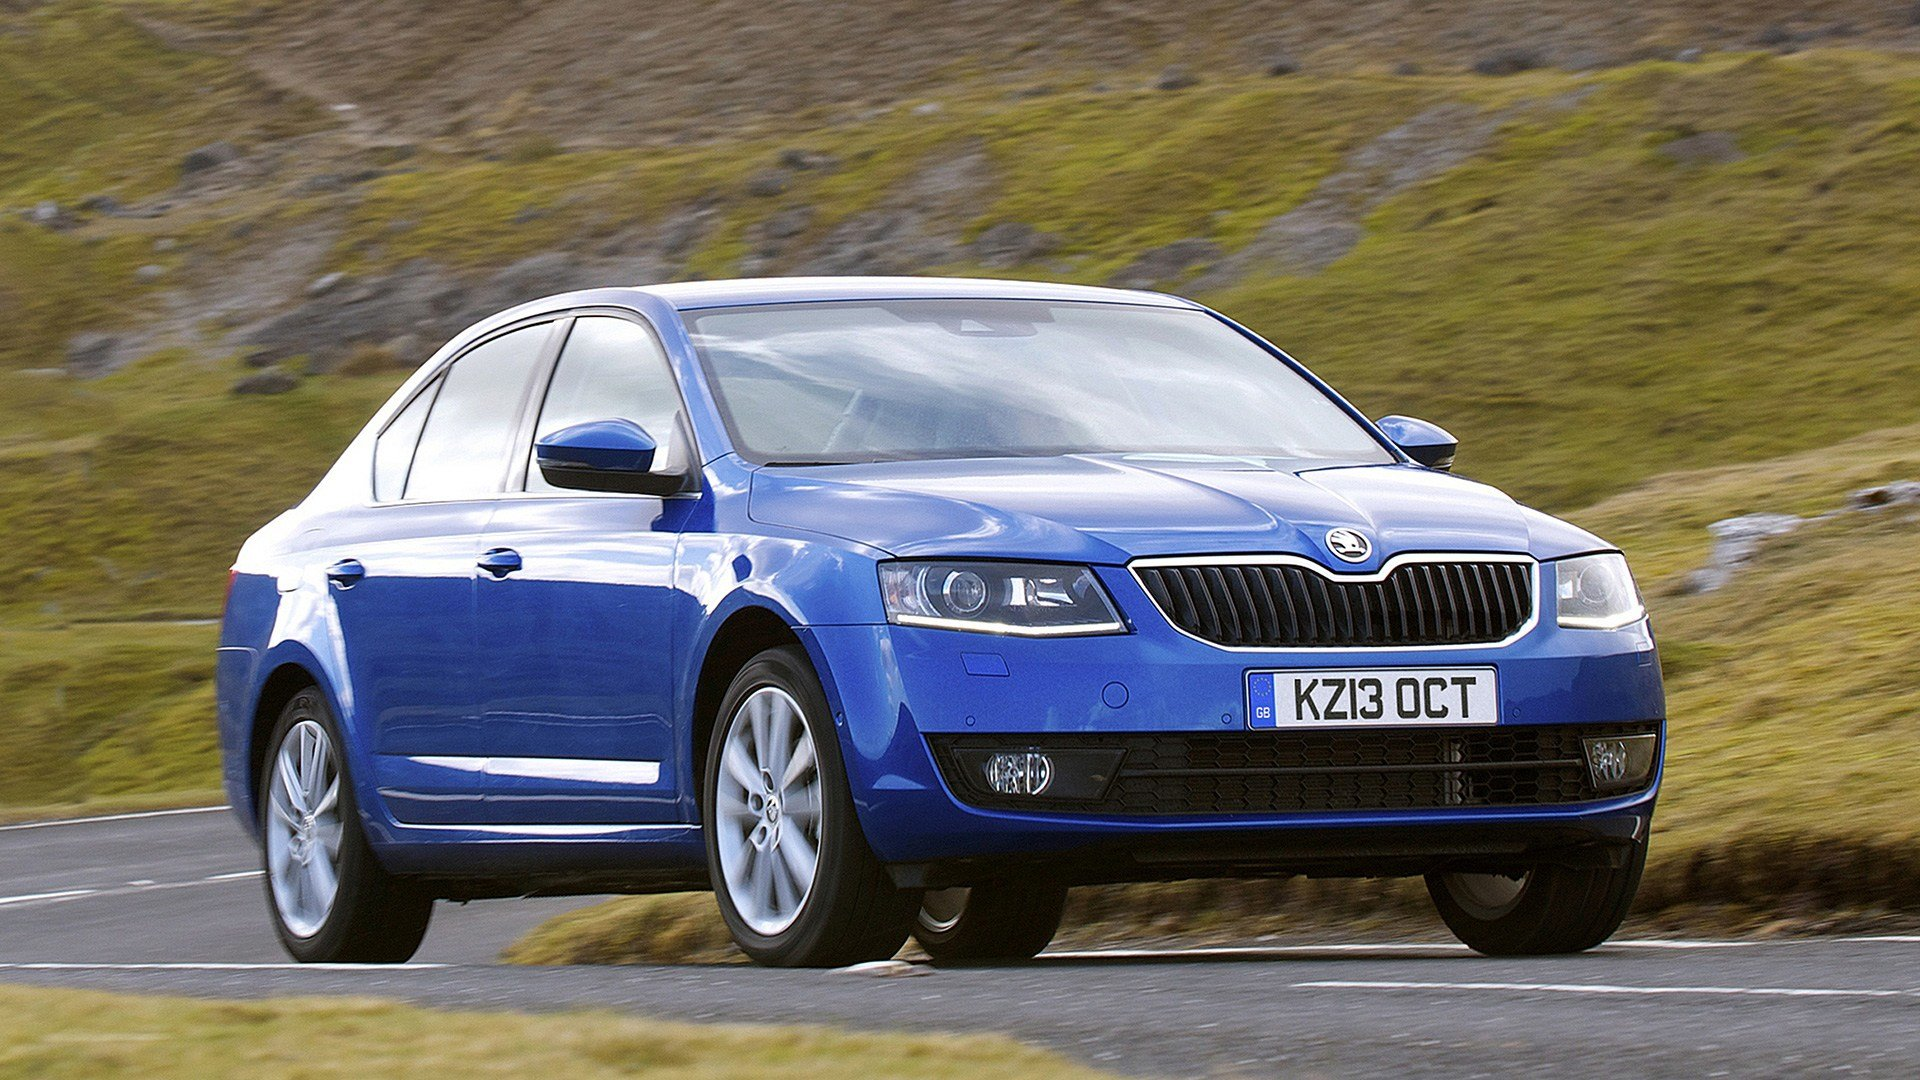 New Skoda Octavia Hatchback 2013 Review Auto Trader Uk On This Month